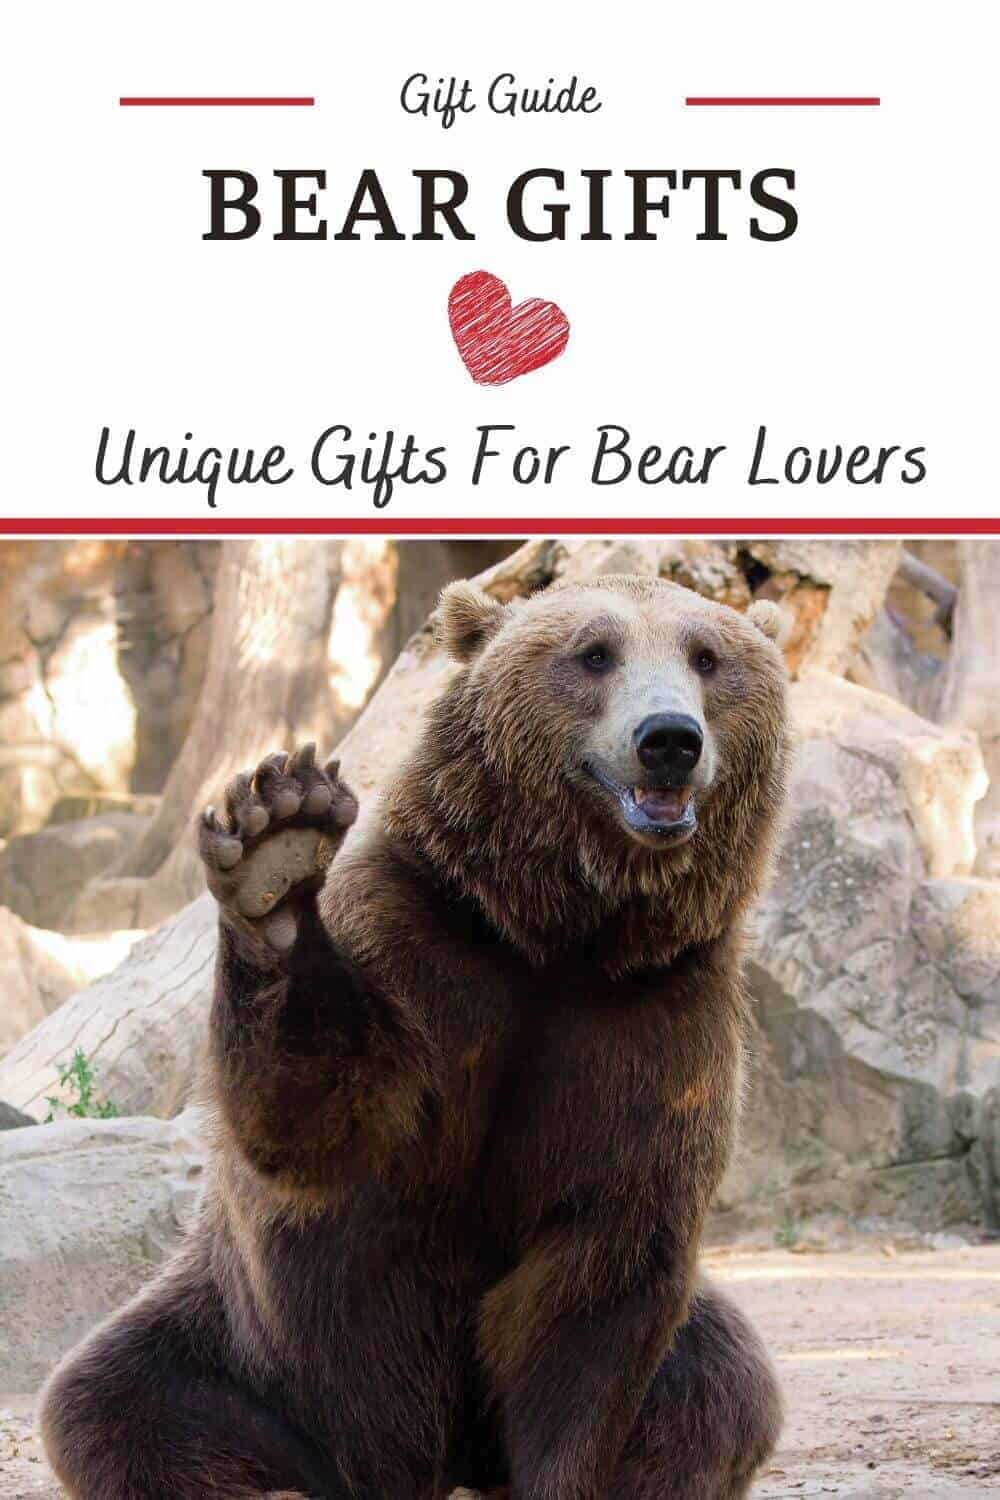 Bear Gifts for Bear Lovers